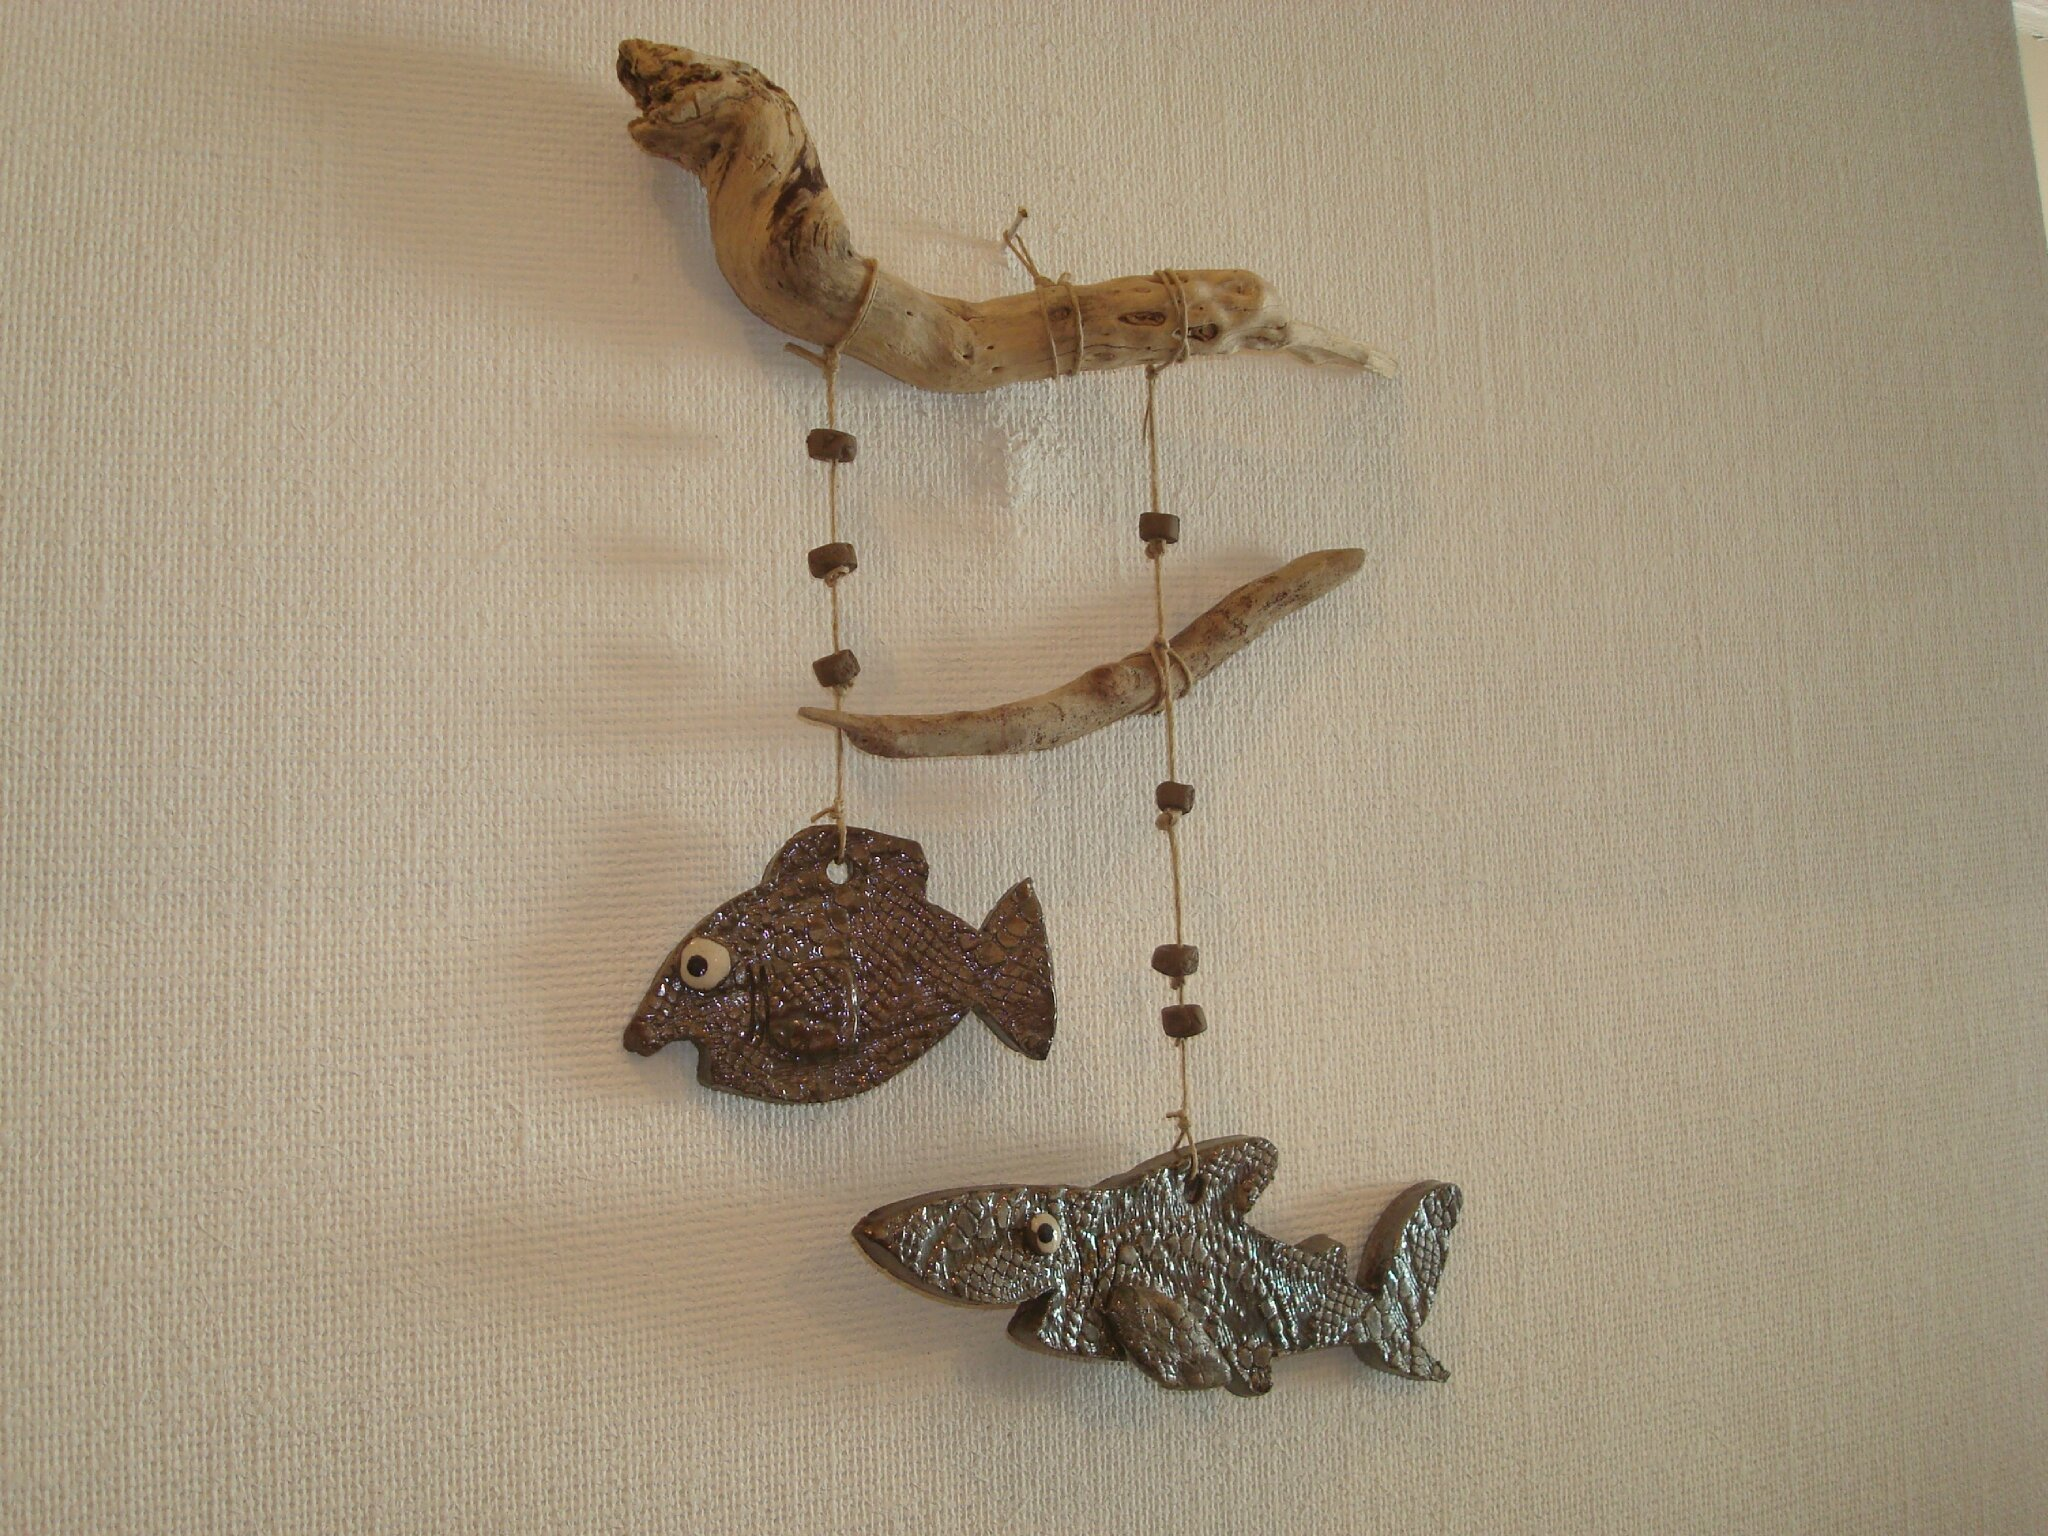 Suspension murale poisson et requin raku bois flott for Mobile en bois flotte